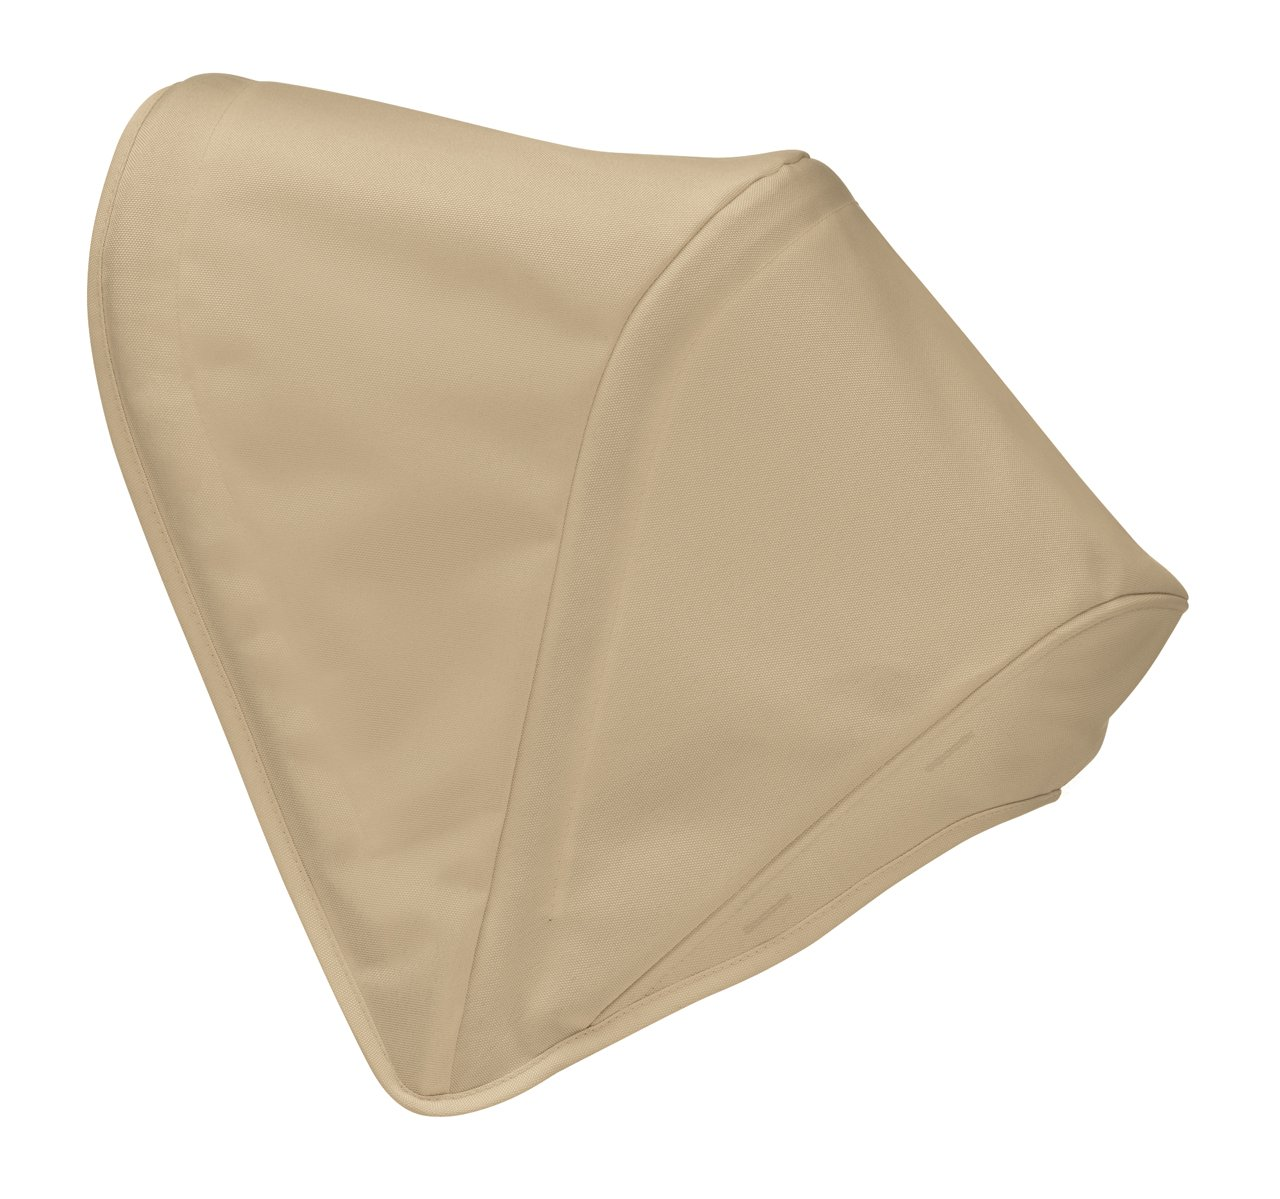 Bugaboo Bee Sun Canopy, Sand (Discontinued by Manufacturer) 580311SA01